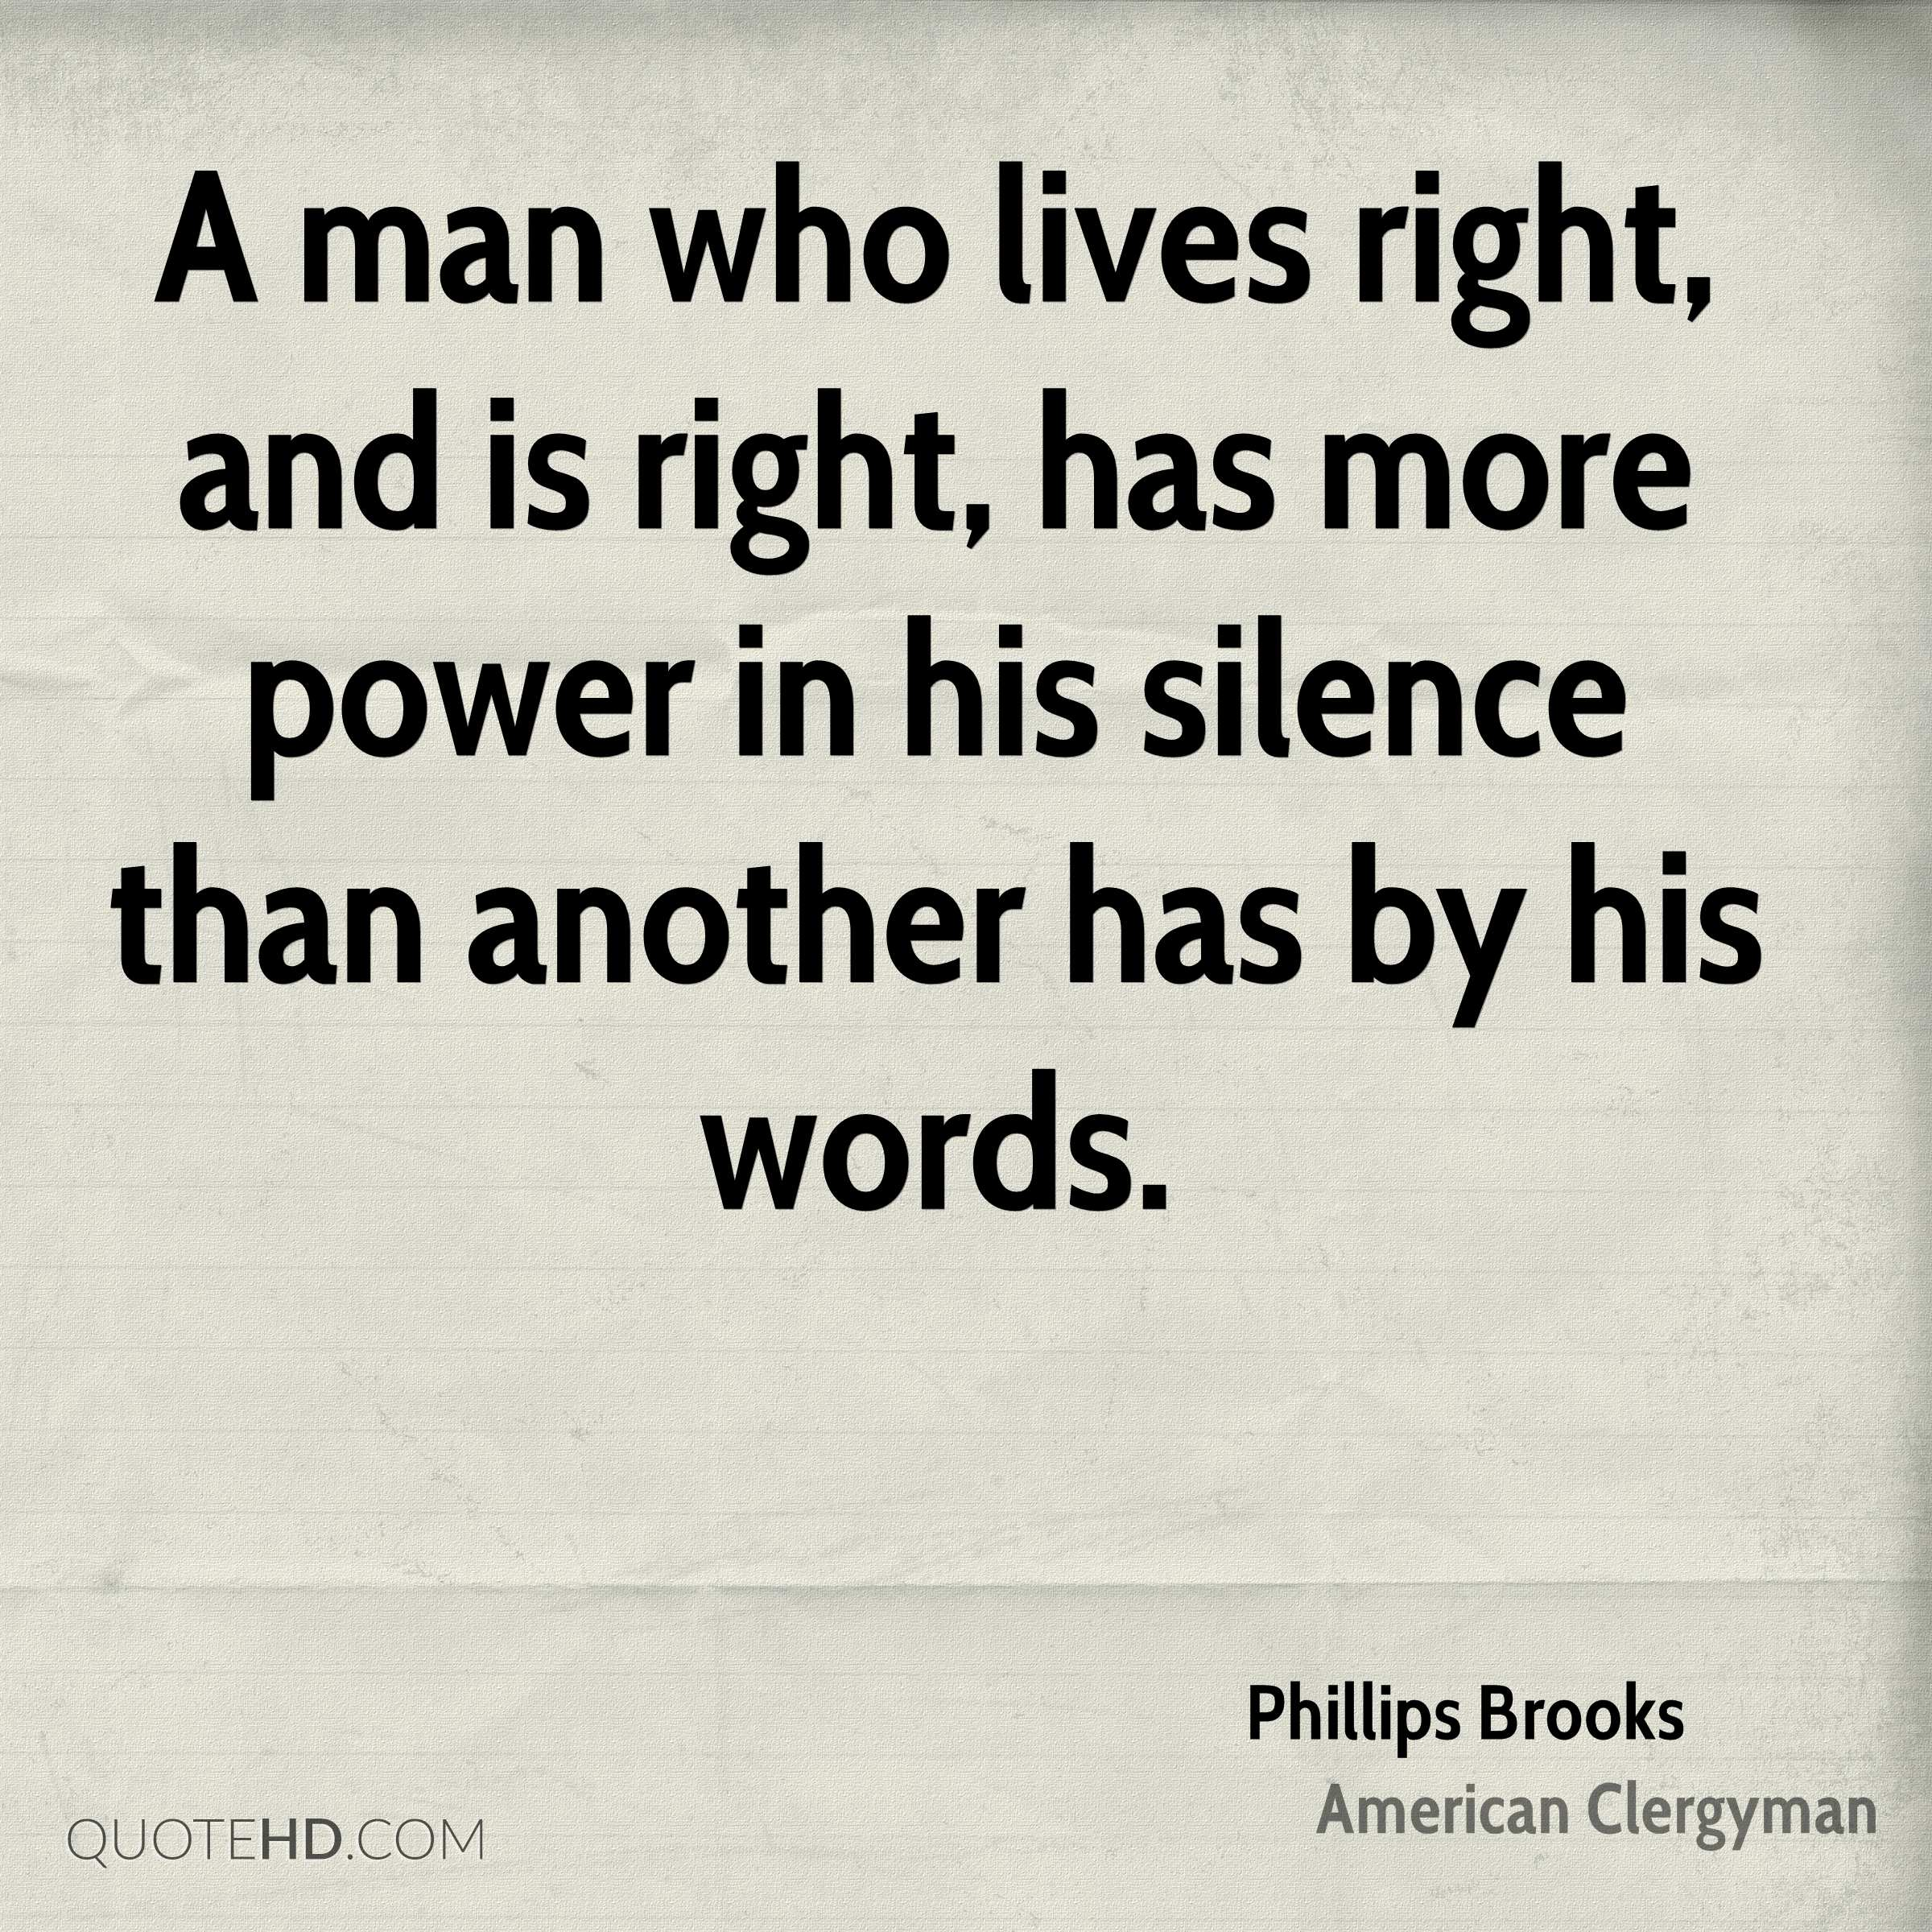 A man who lives right, and is right, has more power in his silence than another has by his words.